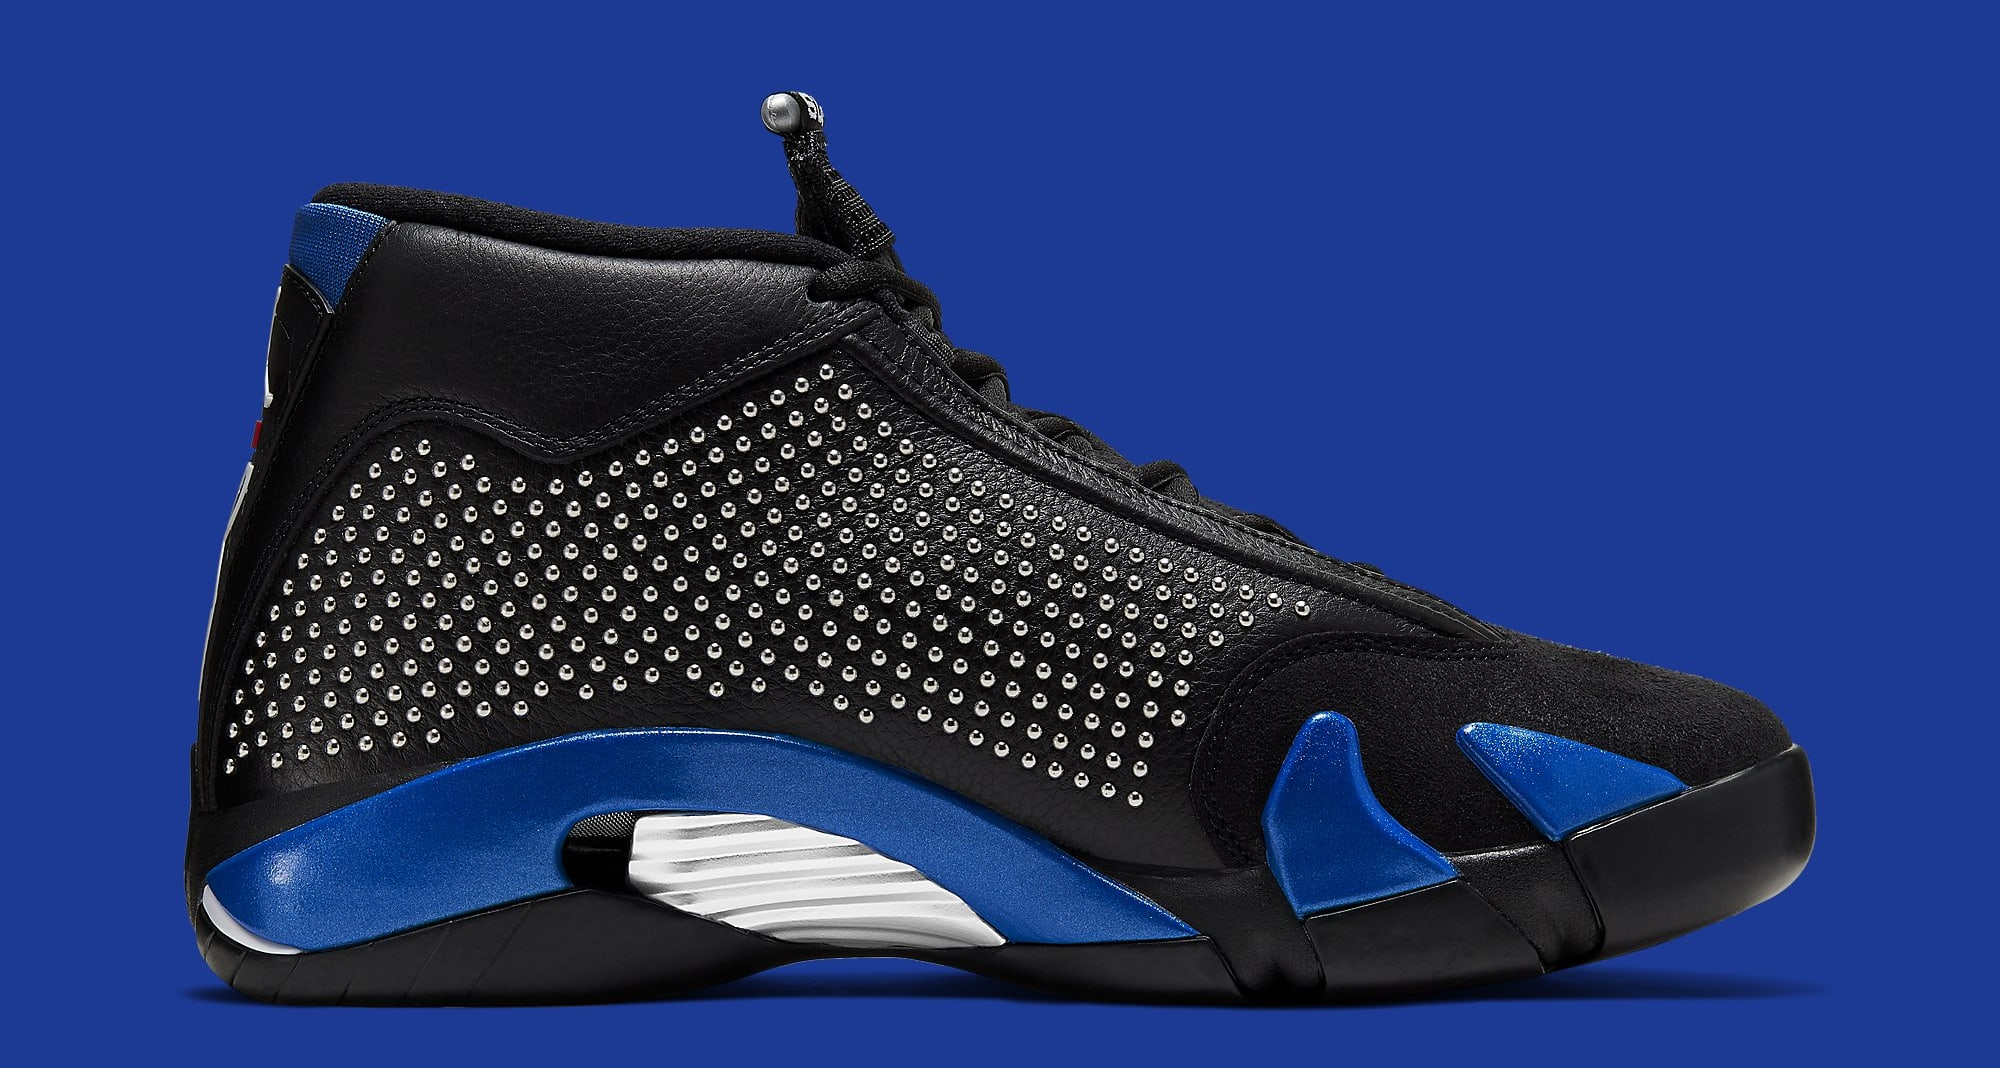 Supreme x Air Jordan 14 'Black/Game Royal' BV7630-004 Medial